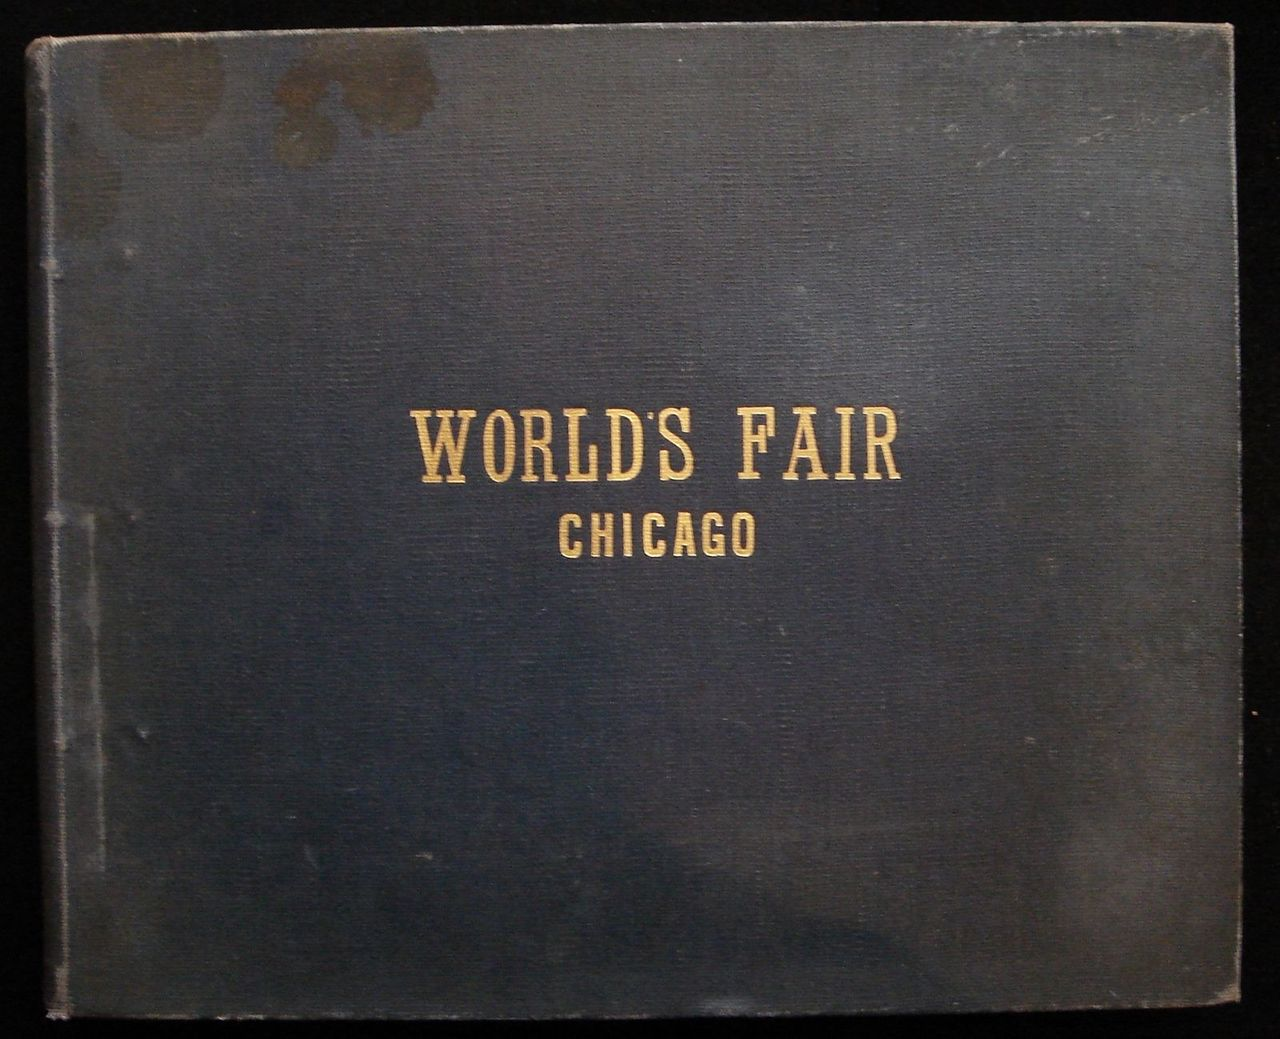 THE COLOMBIAN GALLERY: A PORTFOLIO OF PHOTOGRAPHS FROM THE WORLD'S FAIR, 1894